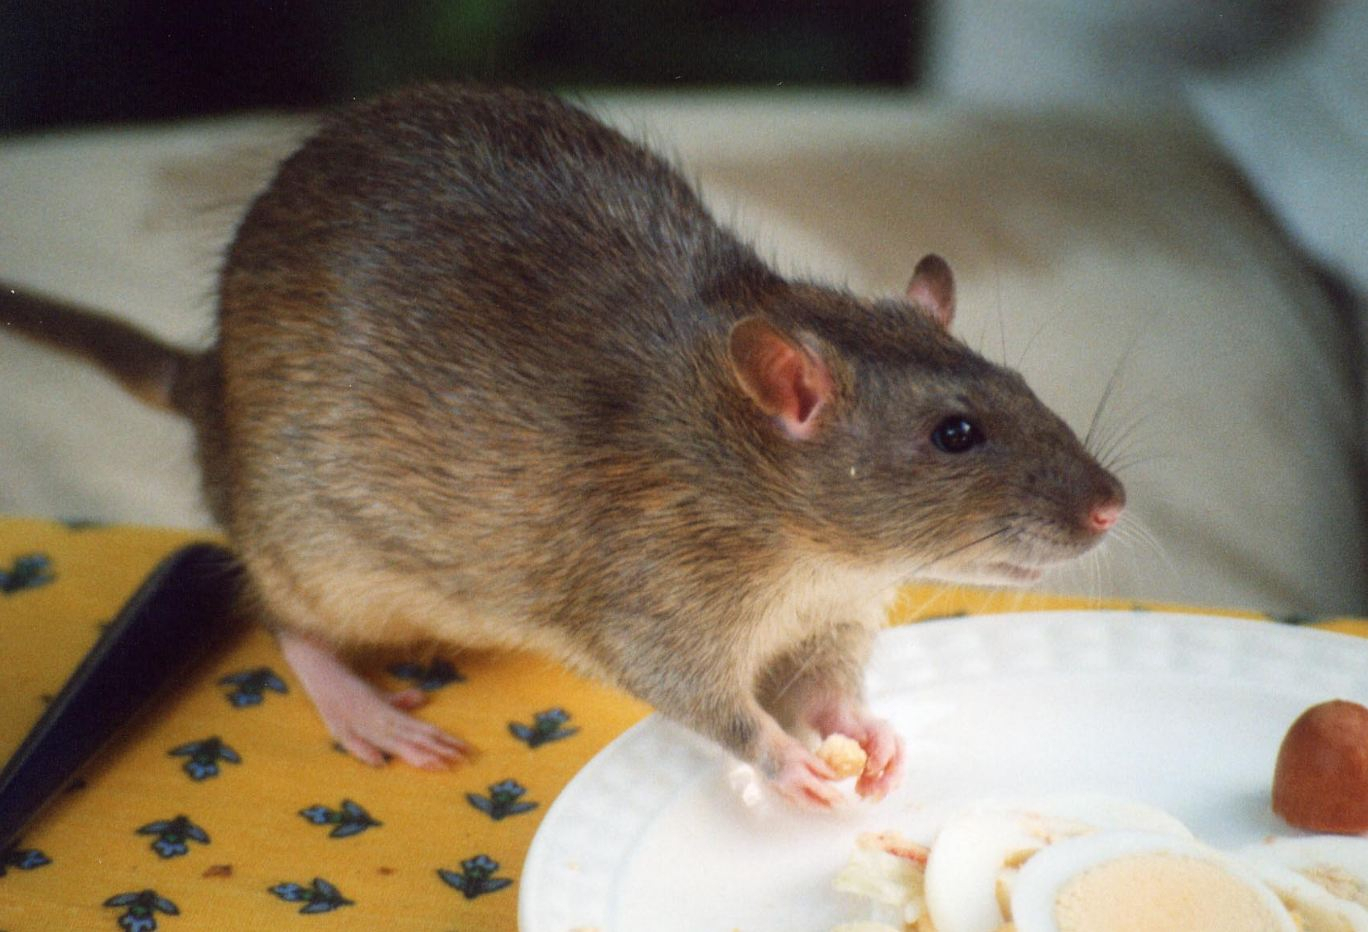 Man dies of hantavirus in China